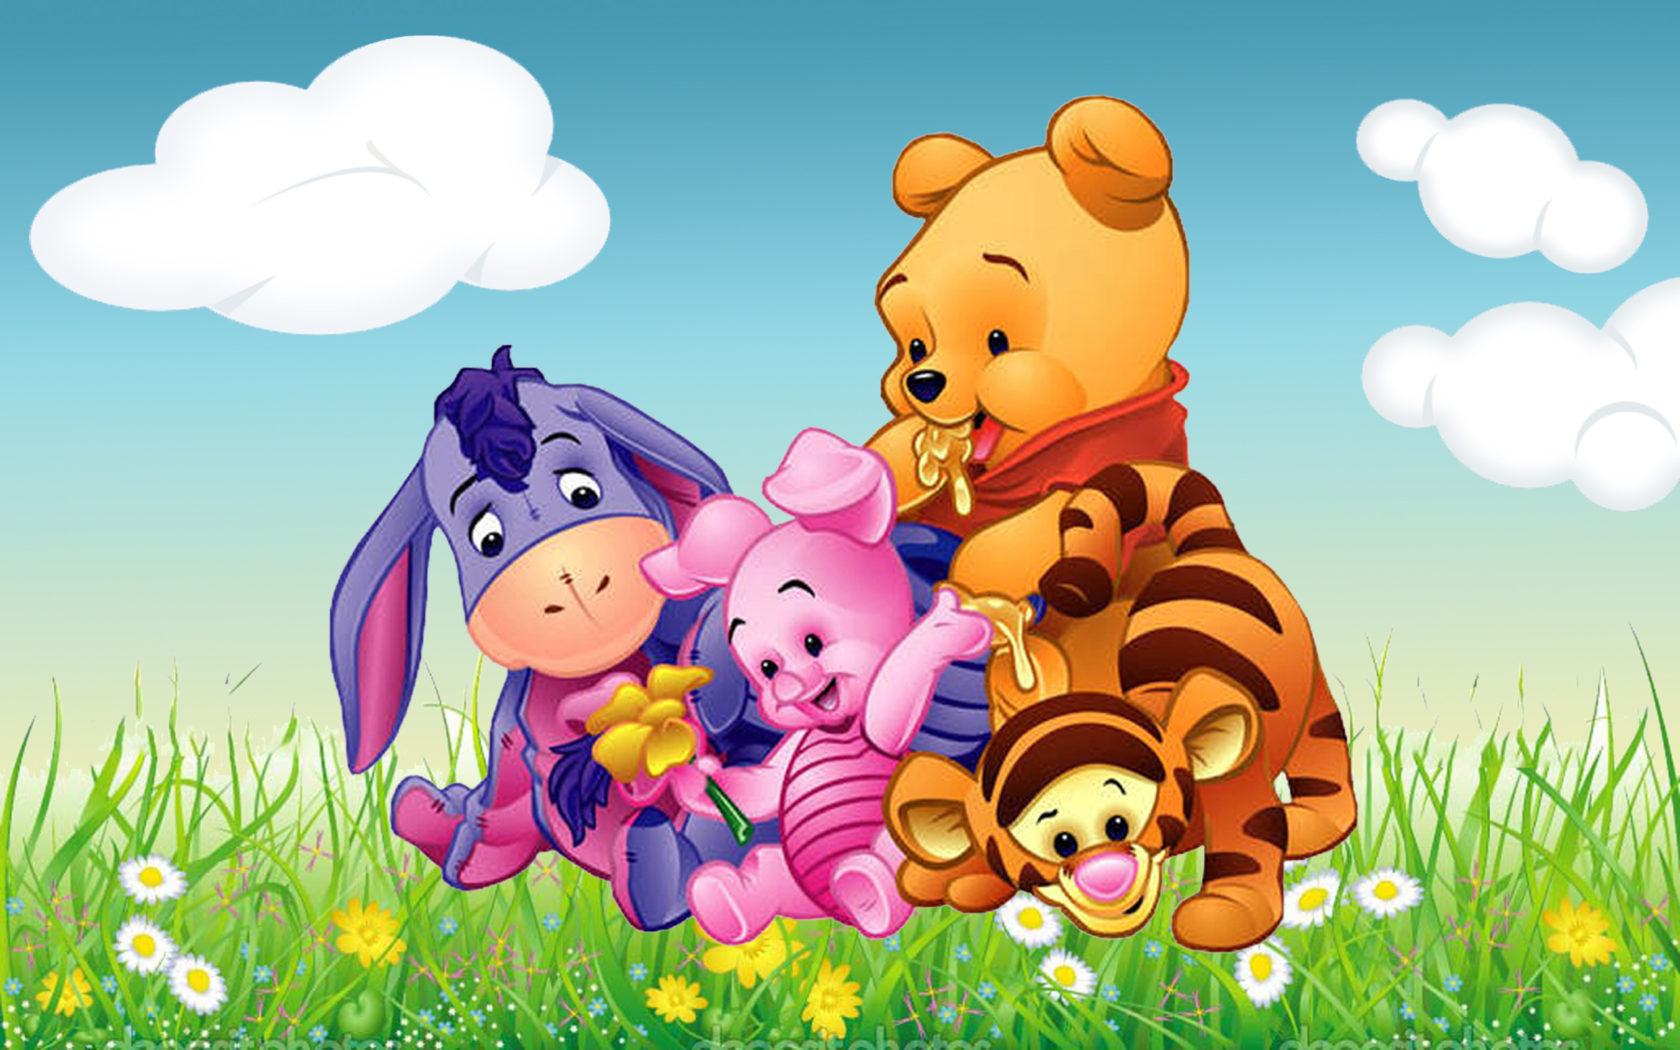 Cute Wallpapers Of Piglet And A Bunny Cartoon Winnie The Pooh Tigger Piglet And Eeyore Babies Hd